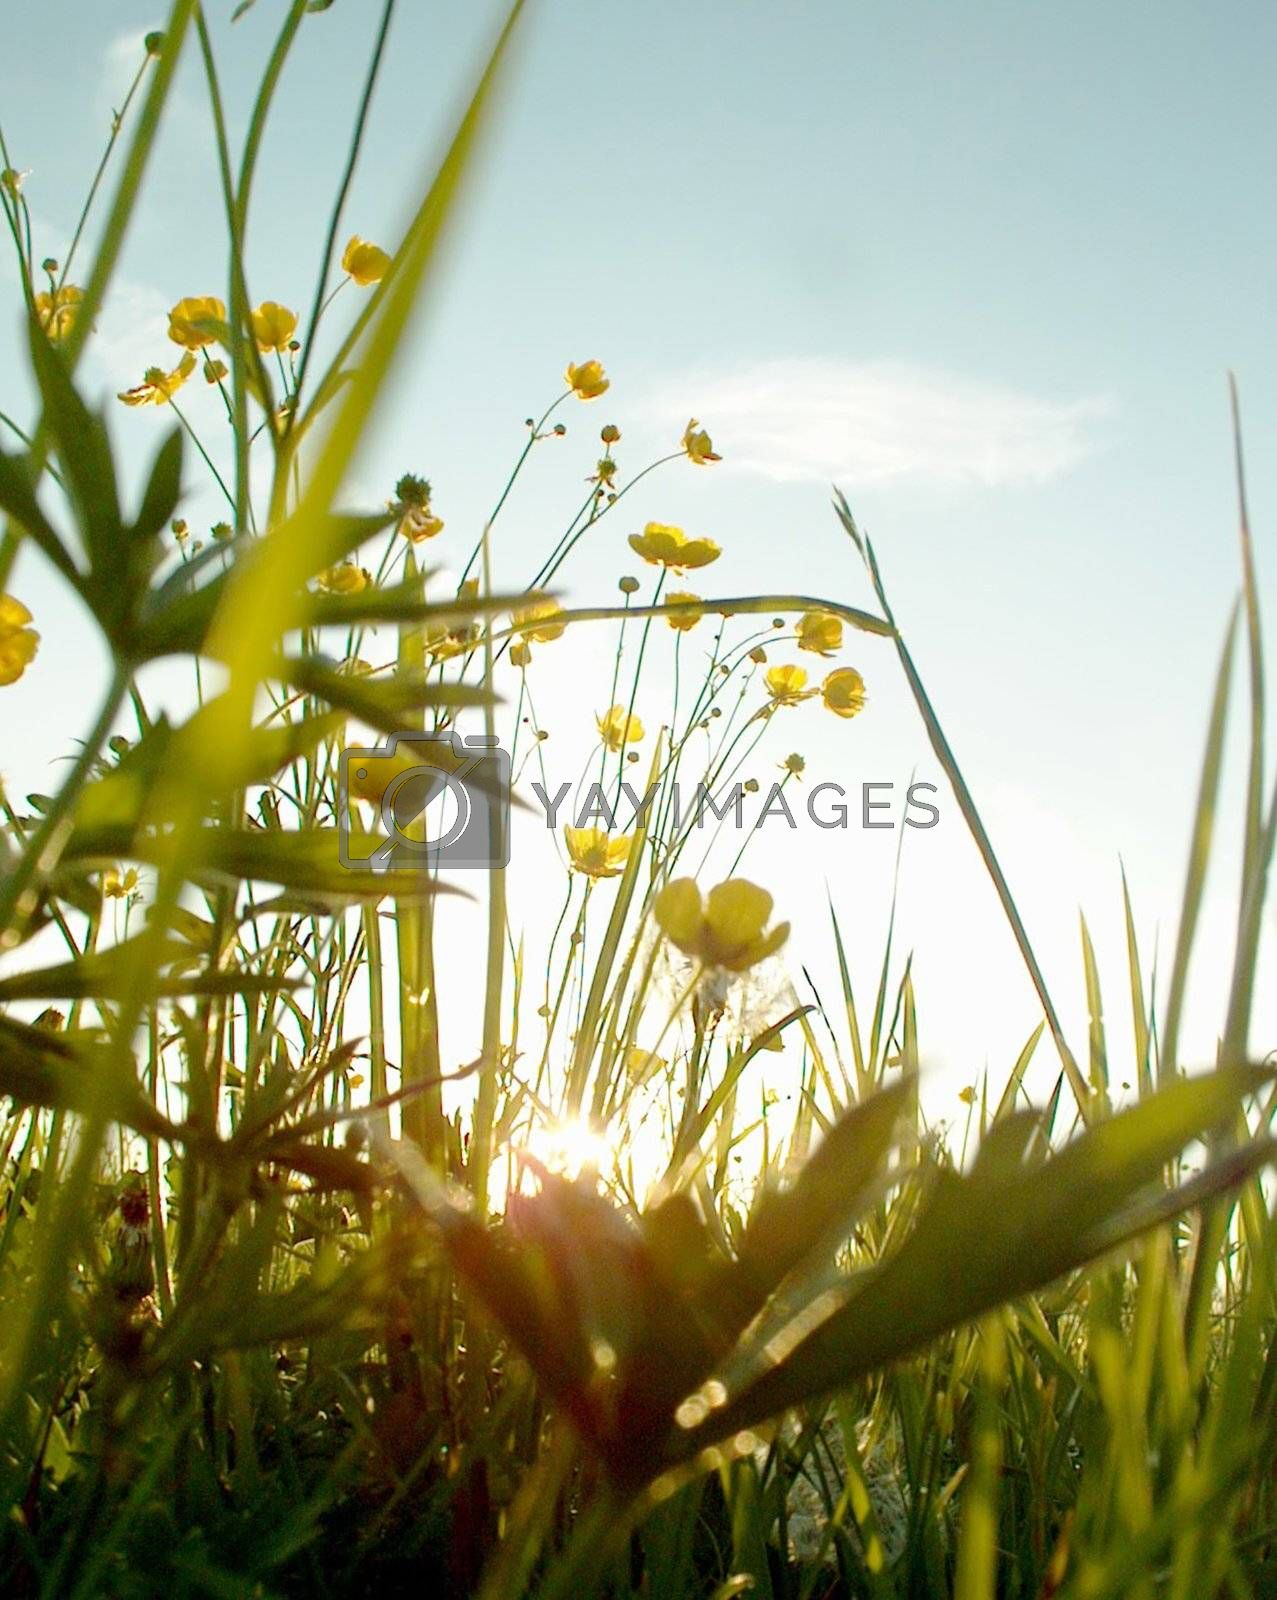 Landscape at springtime Springflowers in a Field